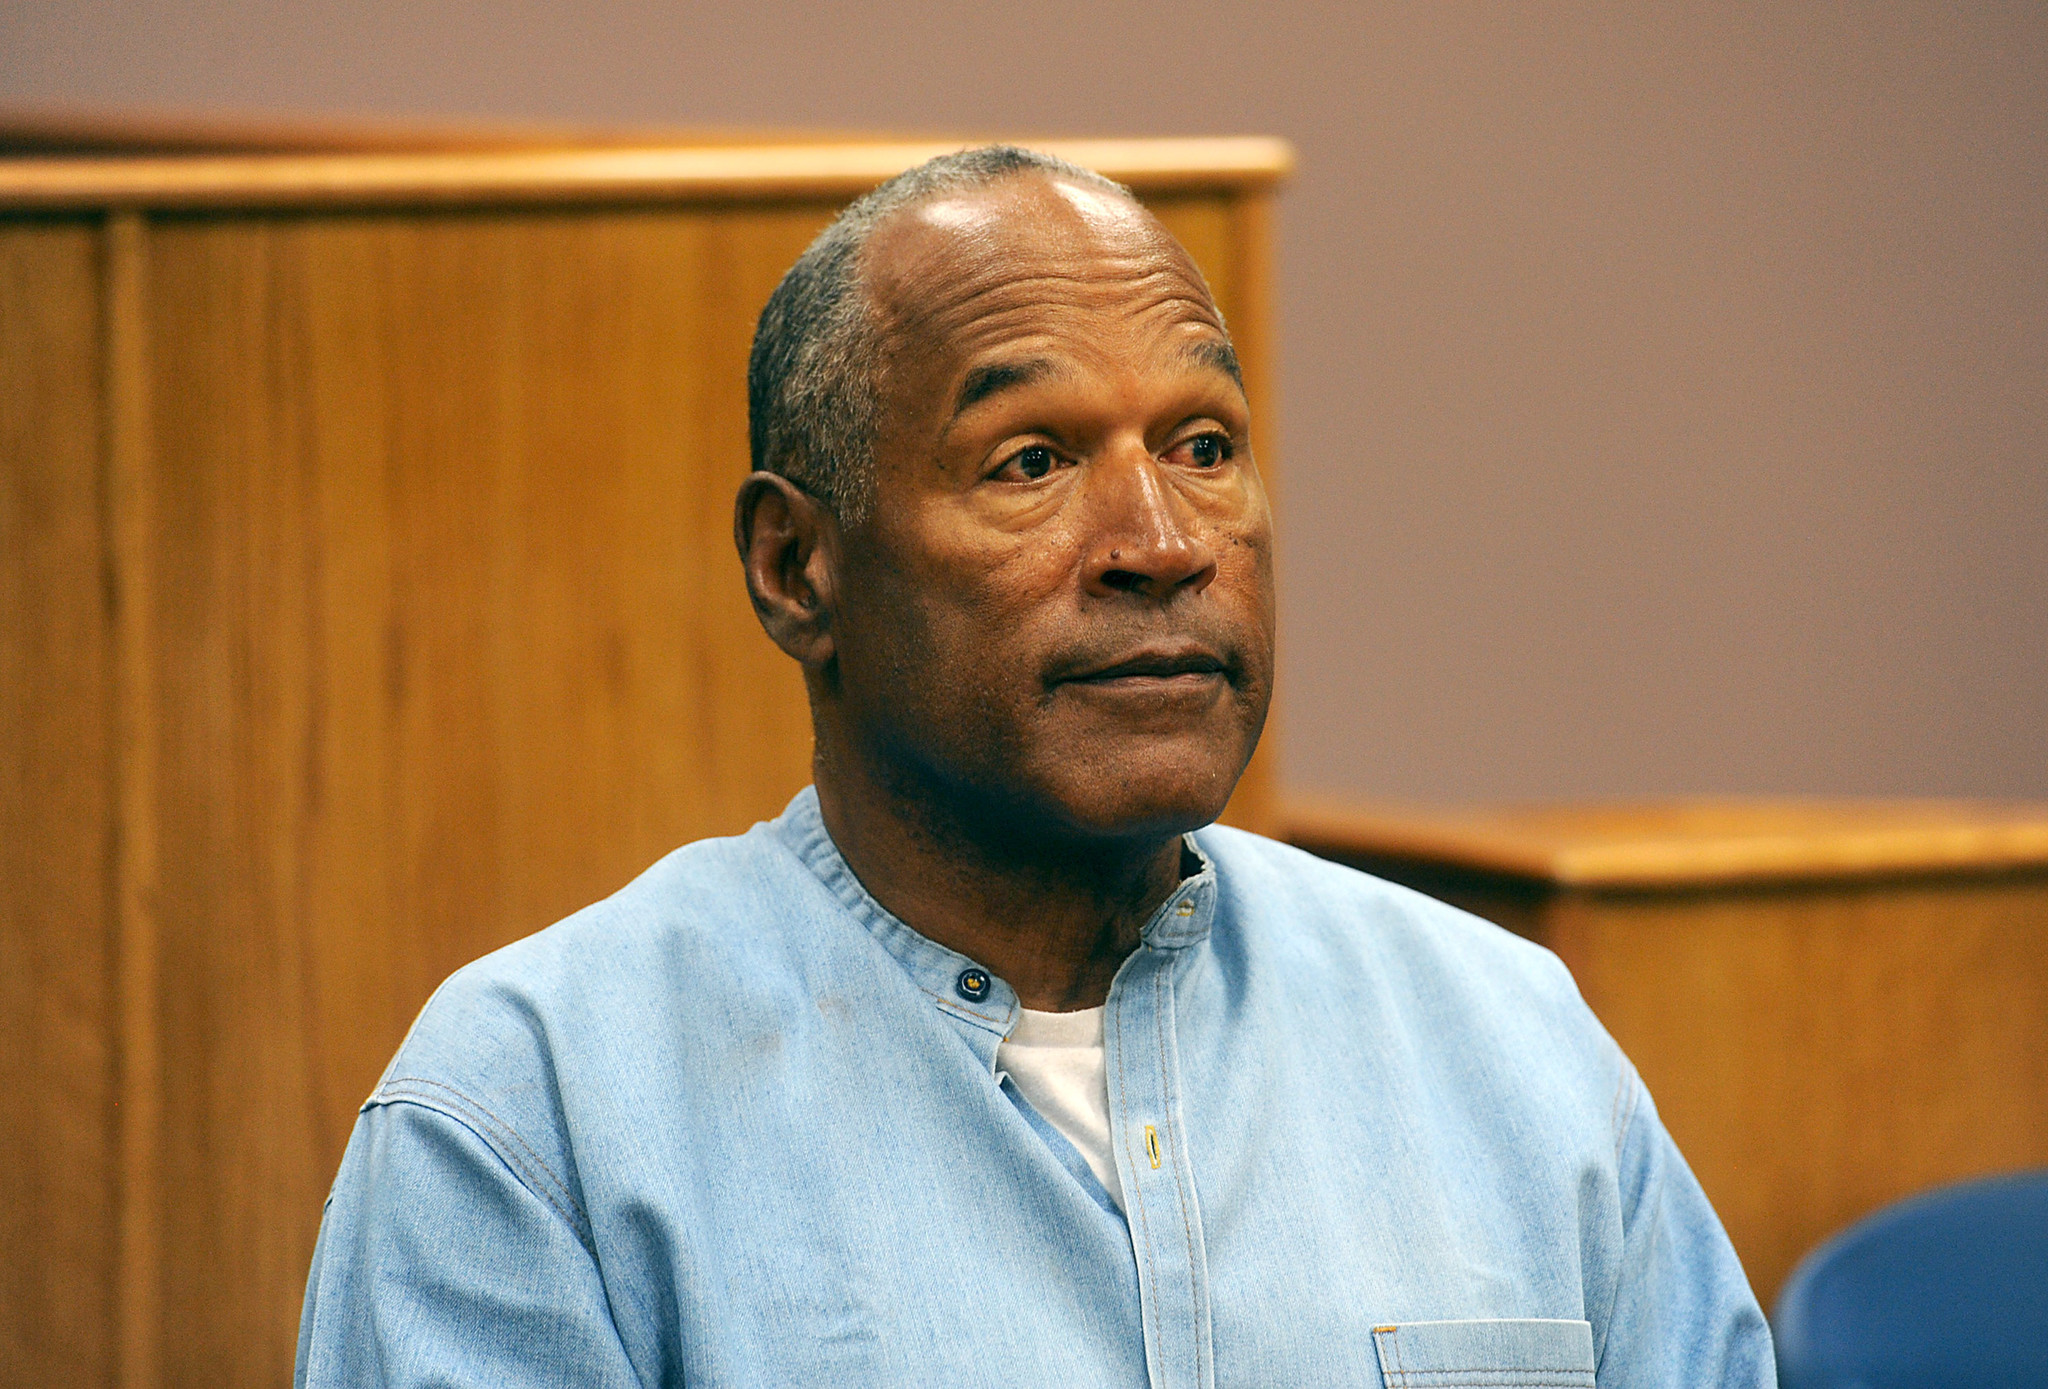 Las Vegas hotel refutes O.J. Simpson's claim that his reputation was damaged by report about him getting kicked out of venue